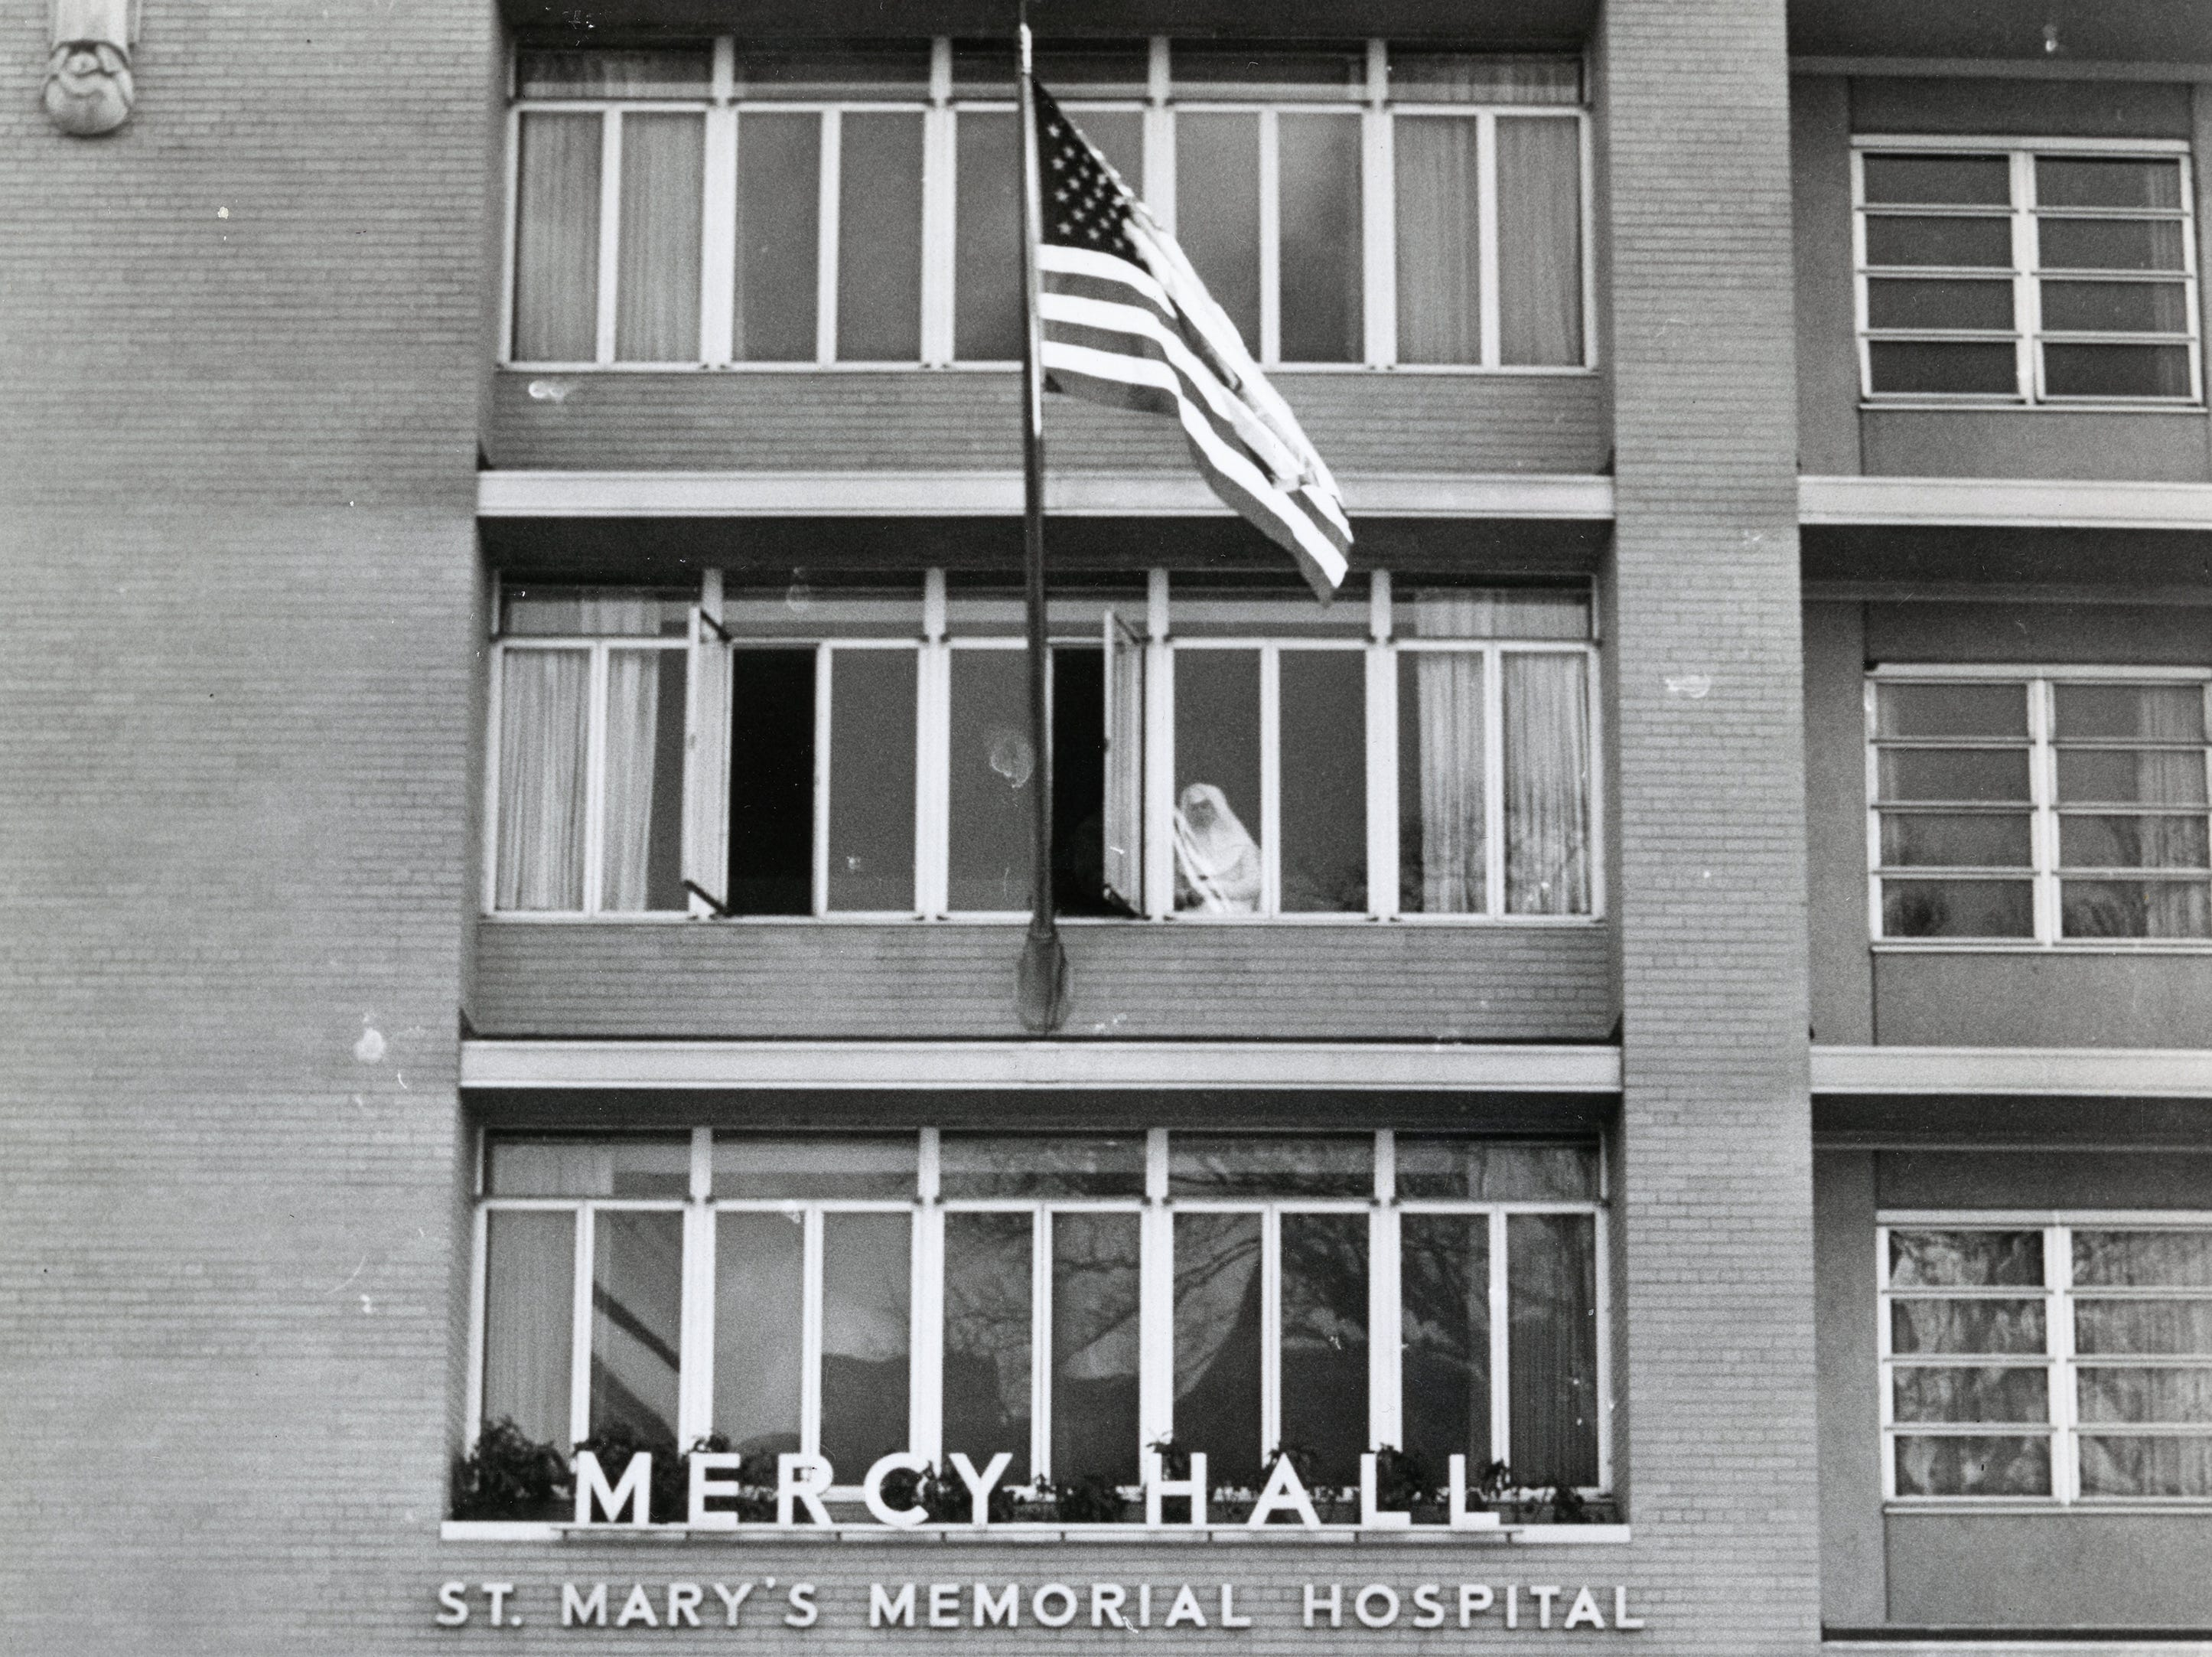 St. Mary's School of Nursin's Mercy Hall in December 1960.